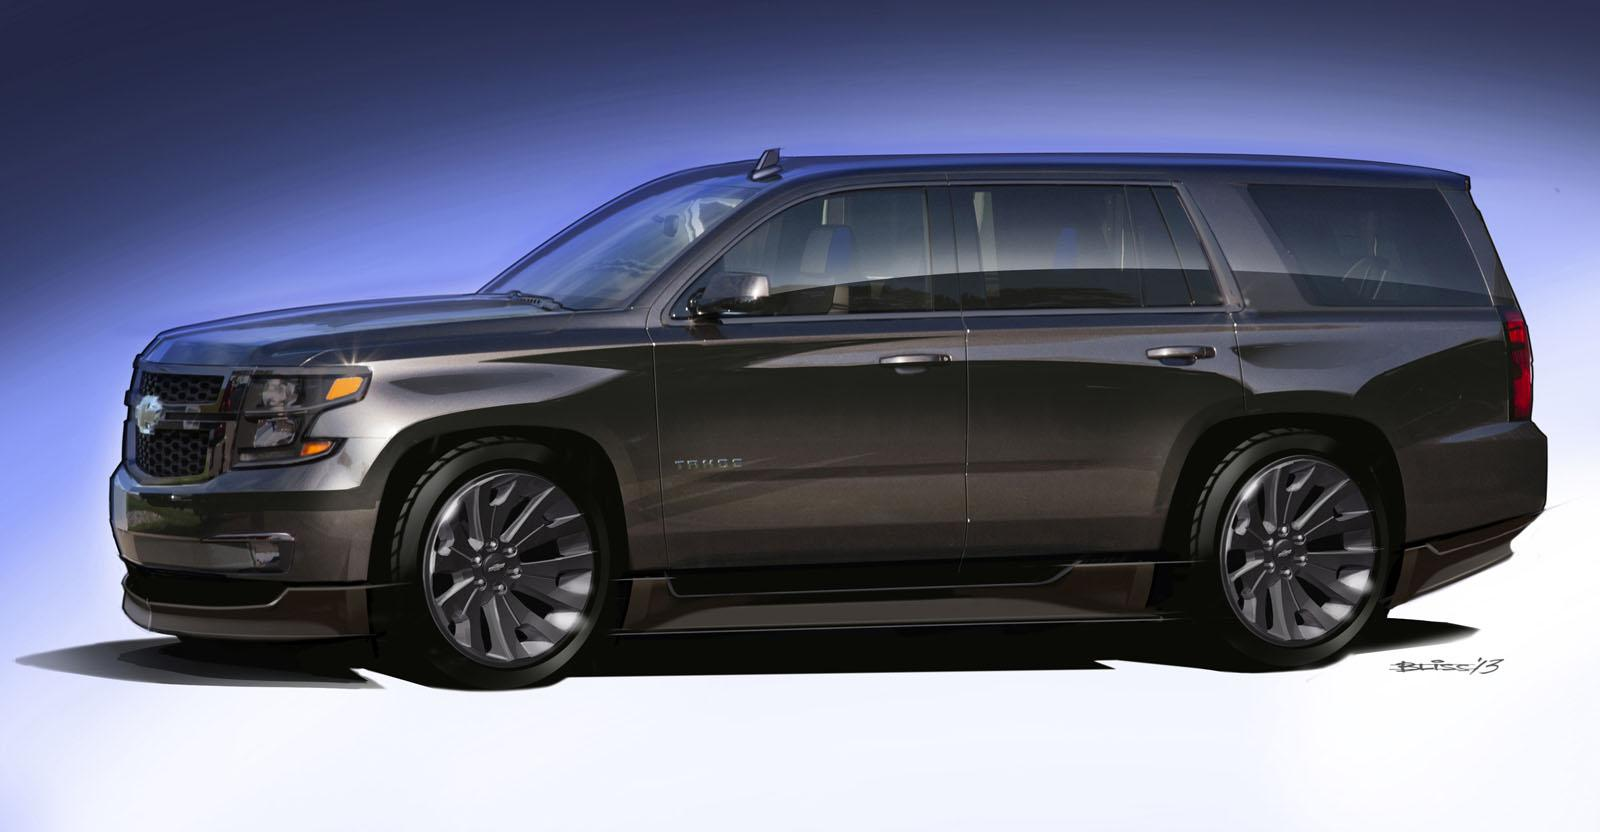 chevrolet orlando lt 2017 html with Chevrolet Unveils Tahoe Suburban Sema Concepts 70306 on Chevrolet Unveils Tahoe Suburban Sema Concepts 70306 besides Ficha Tecnica Do Novo Chevrolet Sonic Hatch besides Chevrolet Cruze 2013   Facelift Novas together with Kita Opel Navi900 Navi600 2016 2017 Sd Card Navigatoriai 1226846 together with 2013 Silverado Lifted For Sale.